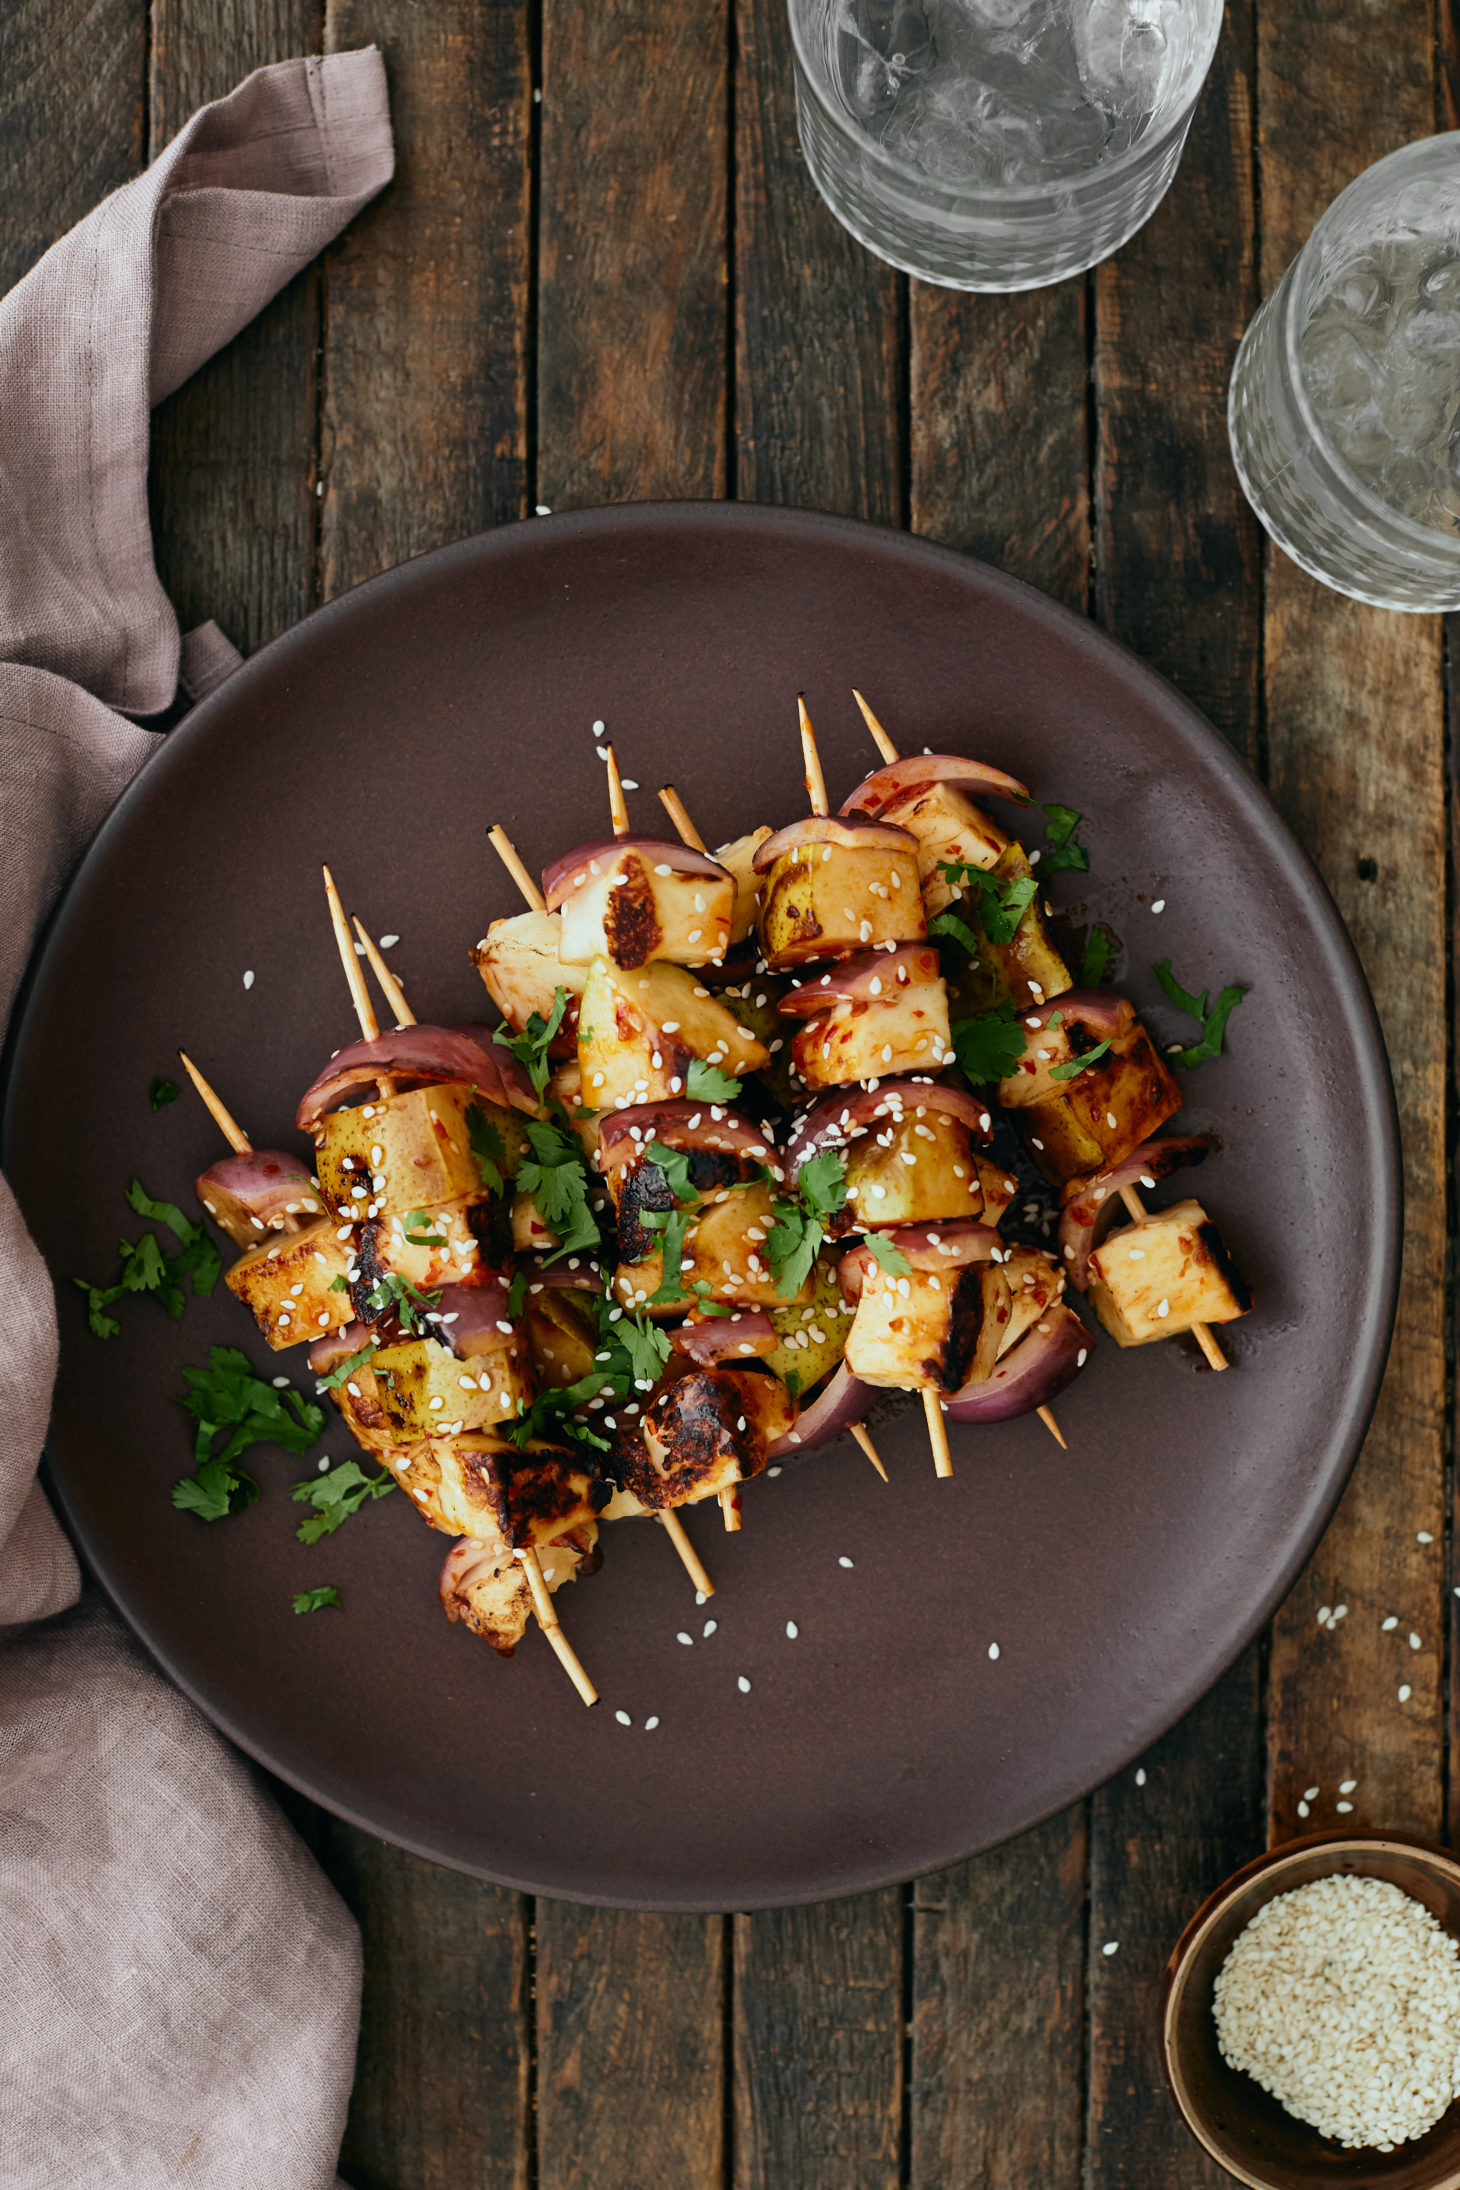 Grilled Pear and Halloumi Skewers with Chili Sauce